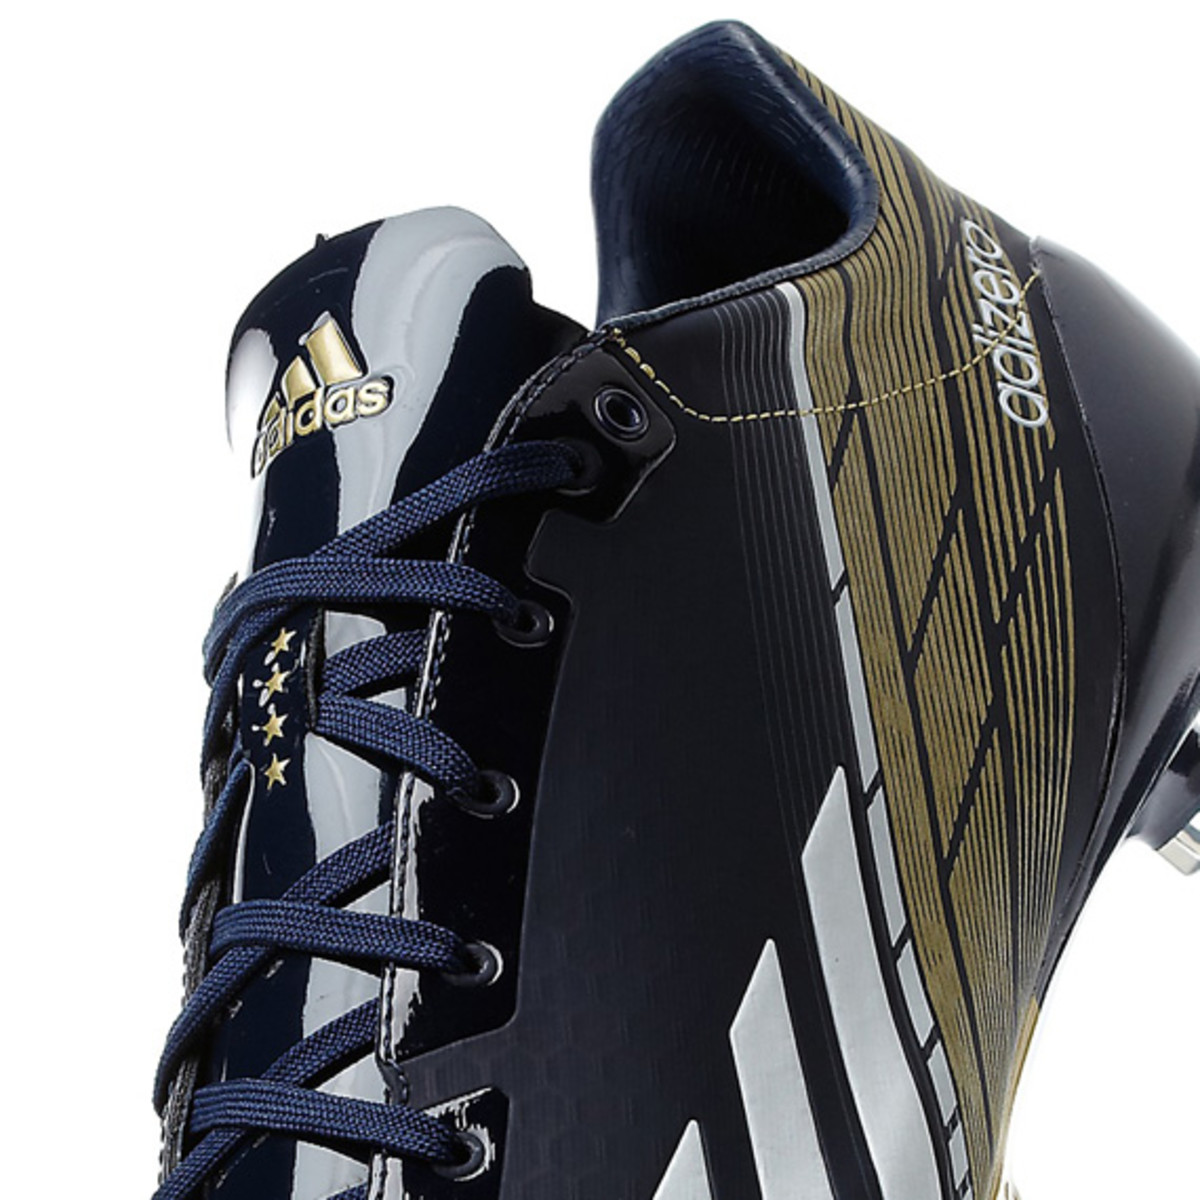 adidas-adizero-5-star-2-0-low-cleats-notre-dame-bcs-championship-g99006-05